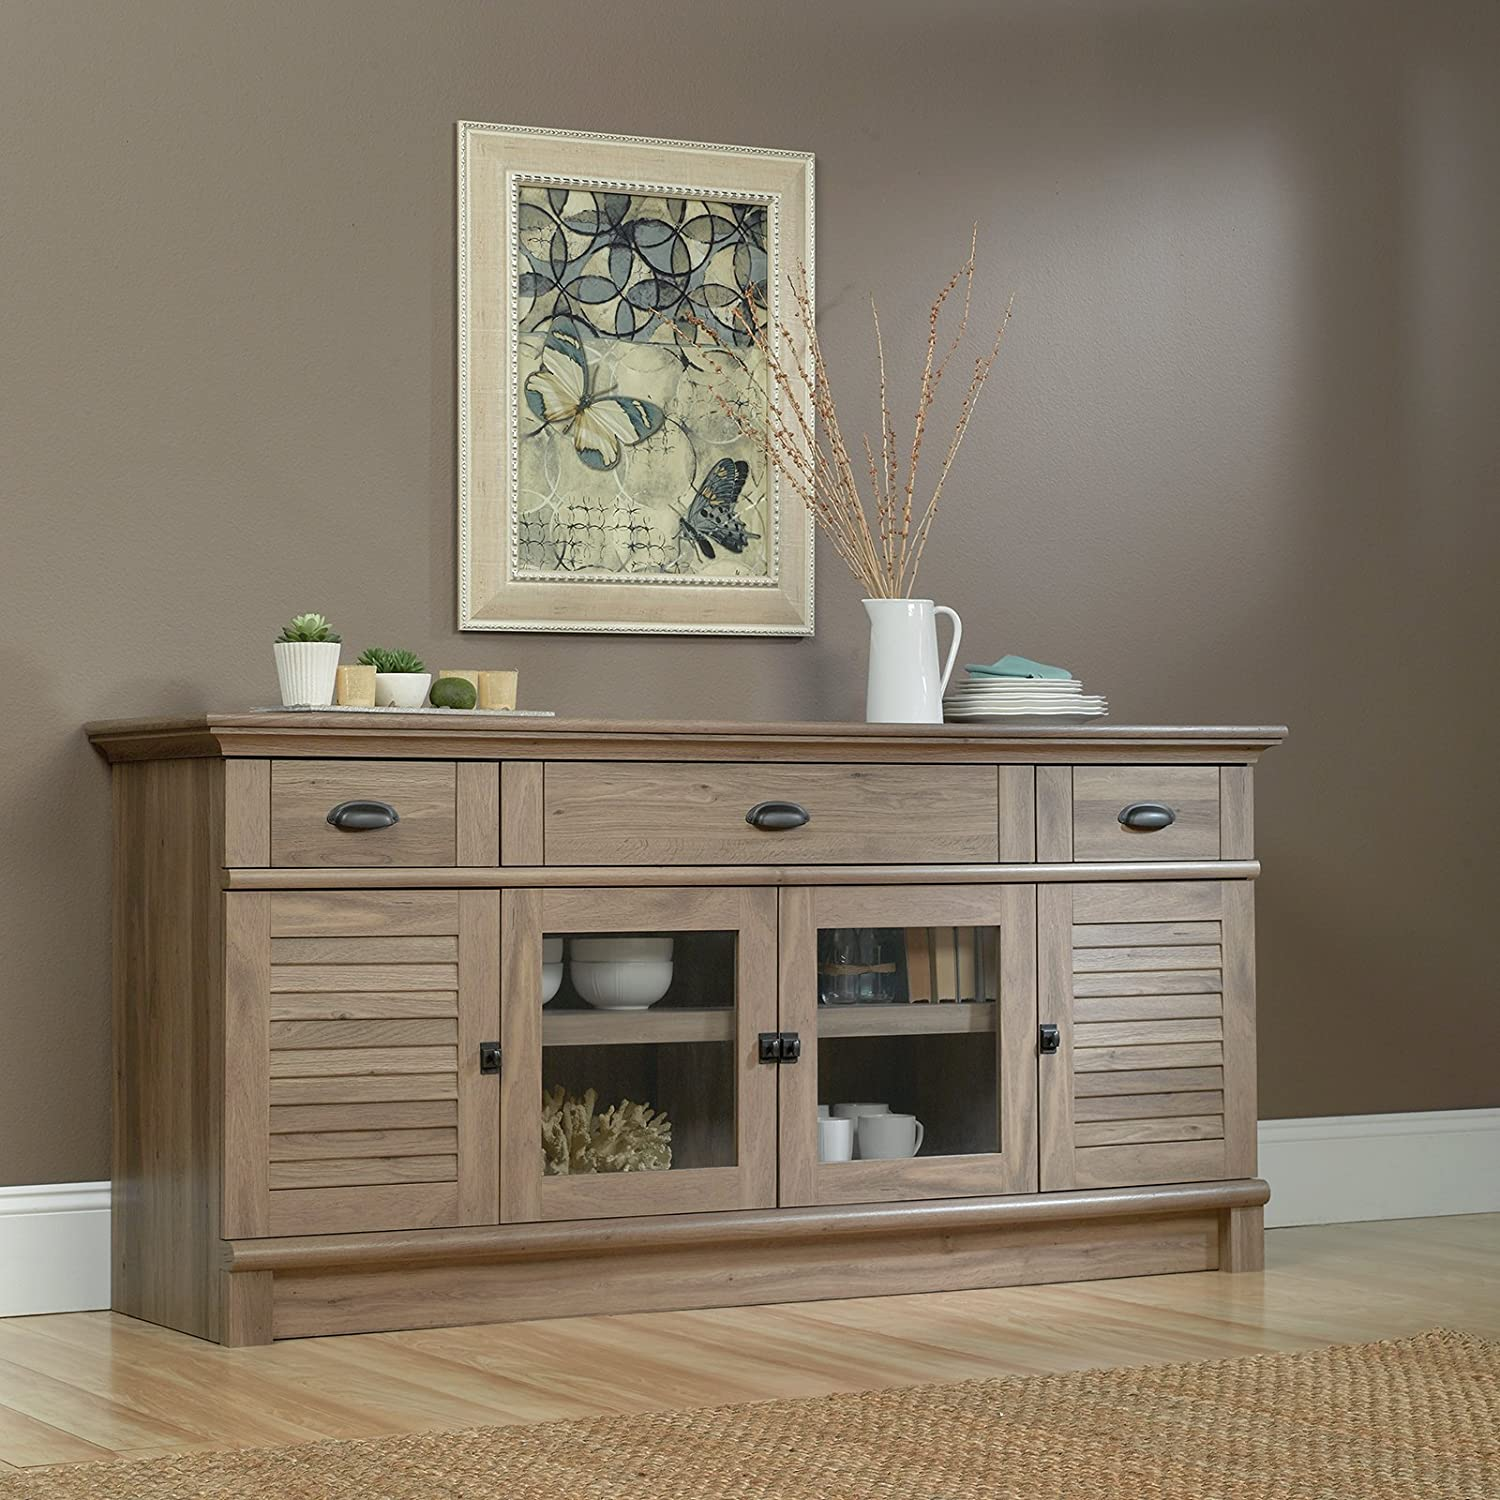 Amazon sauder 415373 salt oak finish harbor view credenza amazon sauder 415373 salt oak finish harbor view credenza kitchen dining geotapseo Image collections